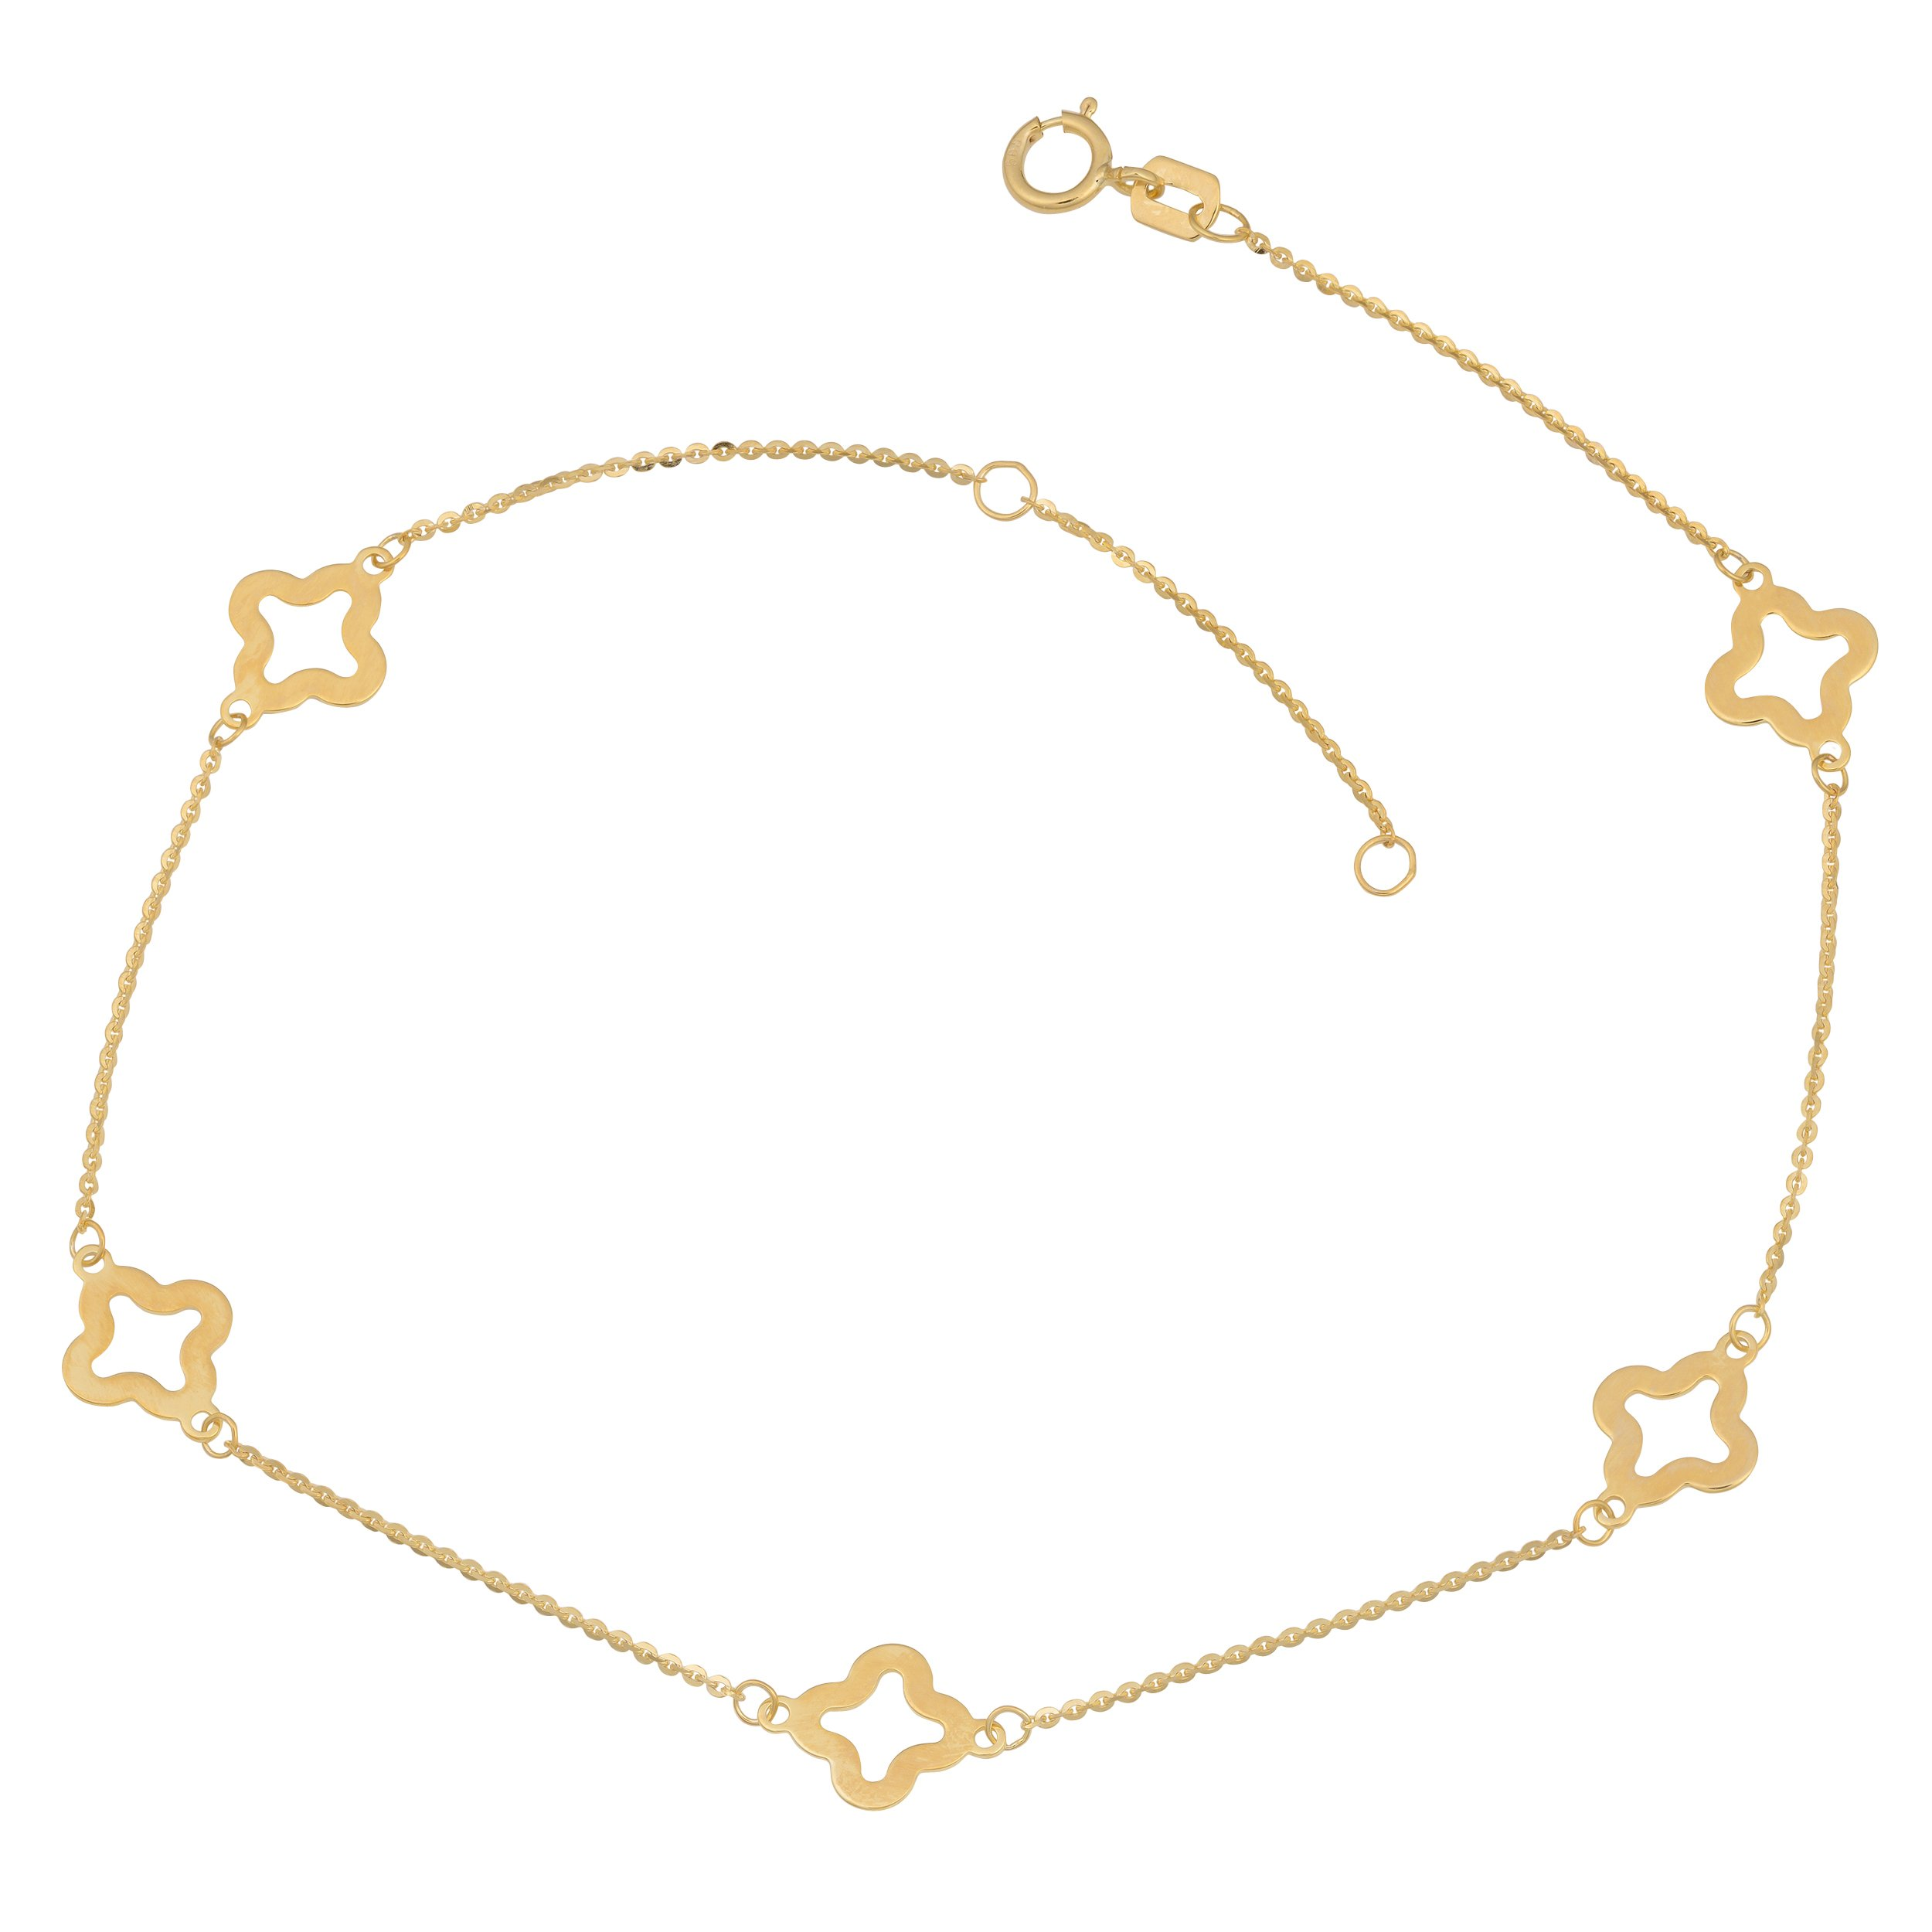 14k Yellow Gold Clover Flower Station Anklet (10 inch)